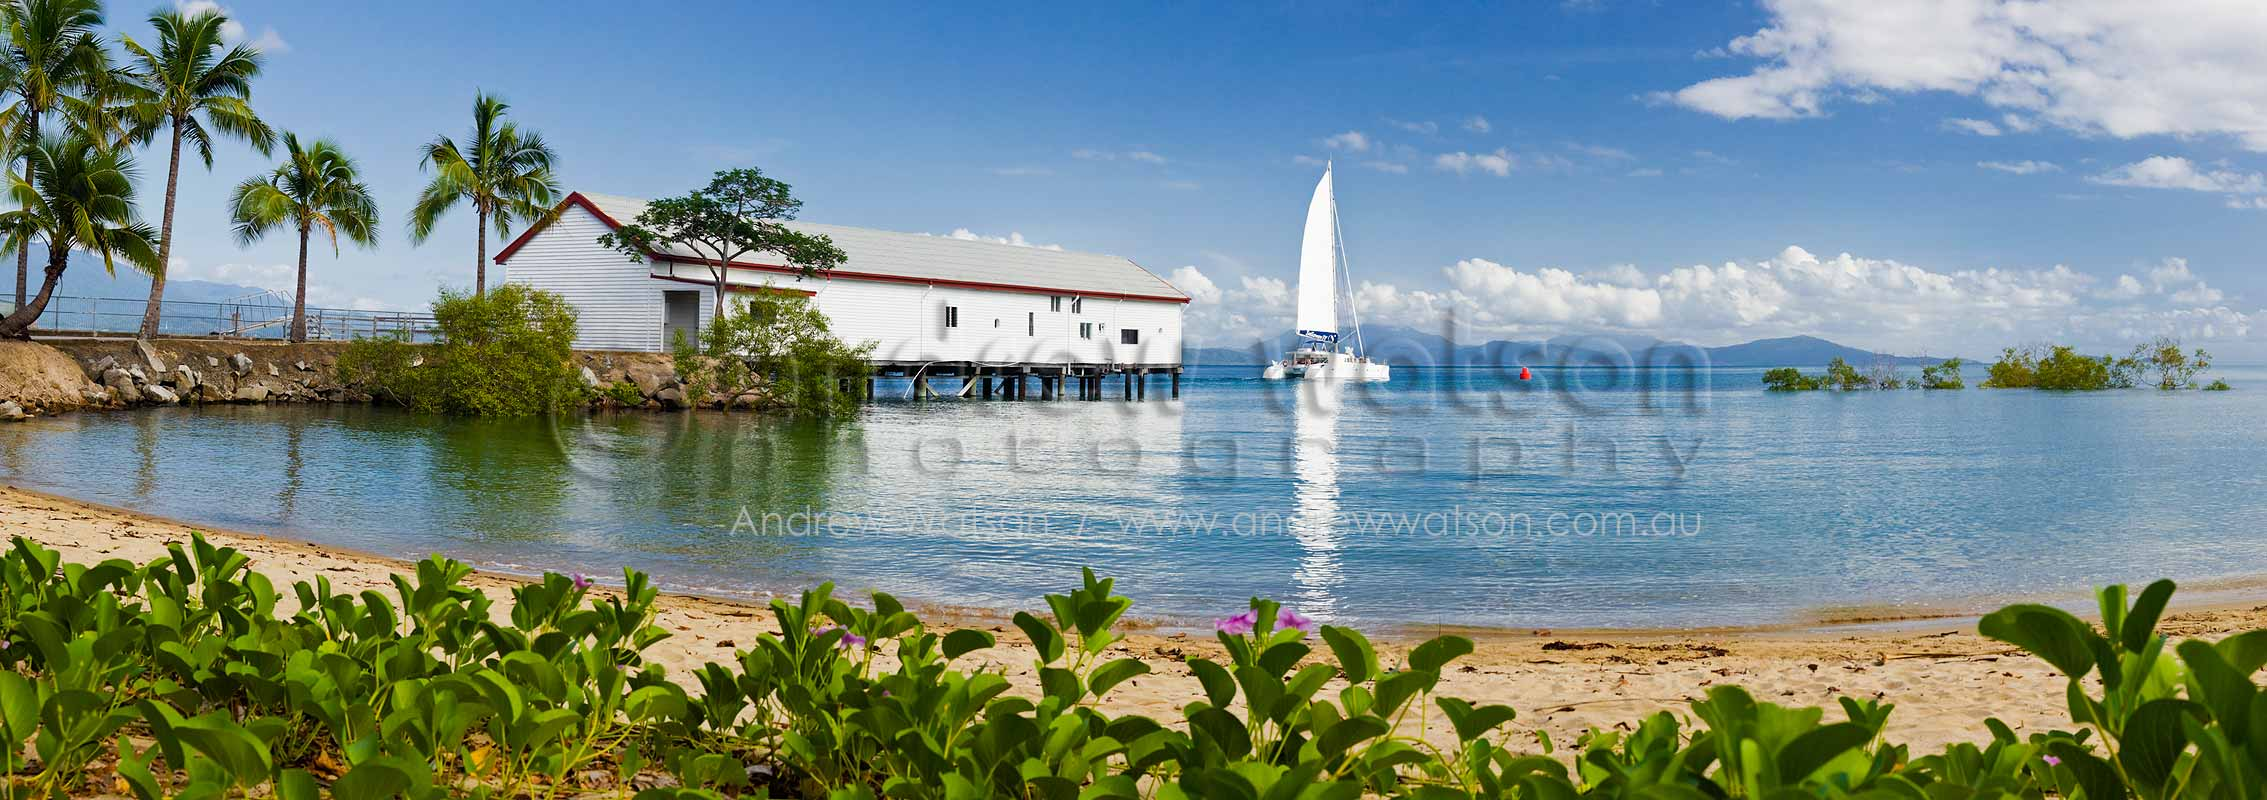 Sailboat passing Sugar WharfPort Douglas, North QueenslandImage available for licensing or as a fine-art print... please enquire